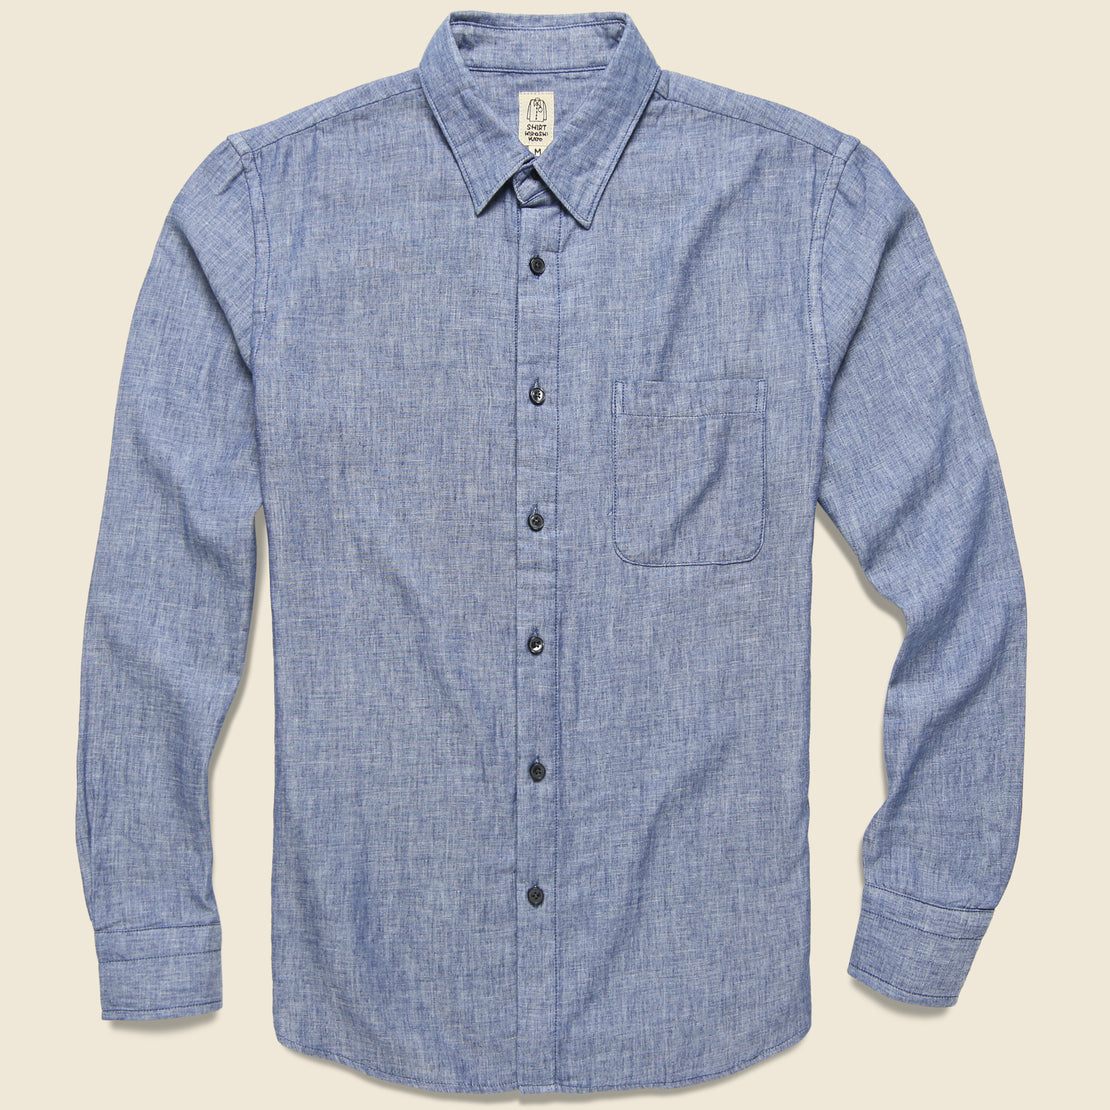 KATO Vintage Double Gauze Shirt - Light Indigo